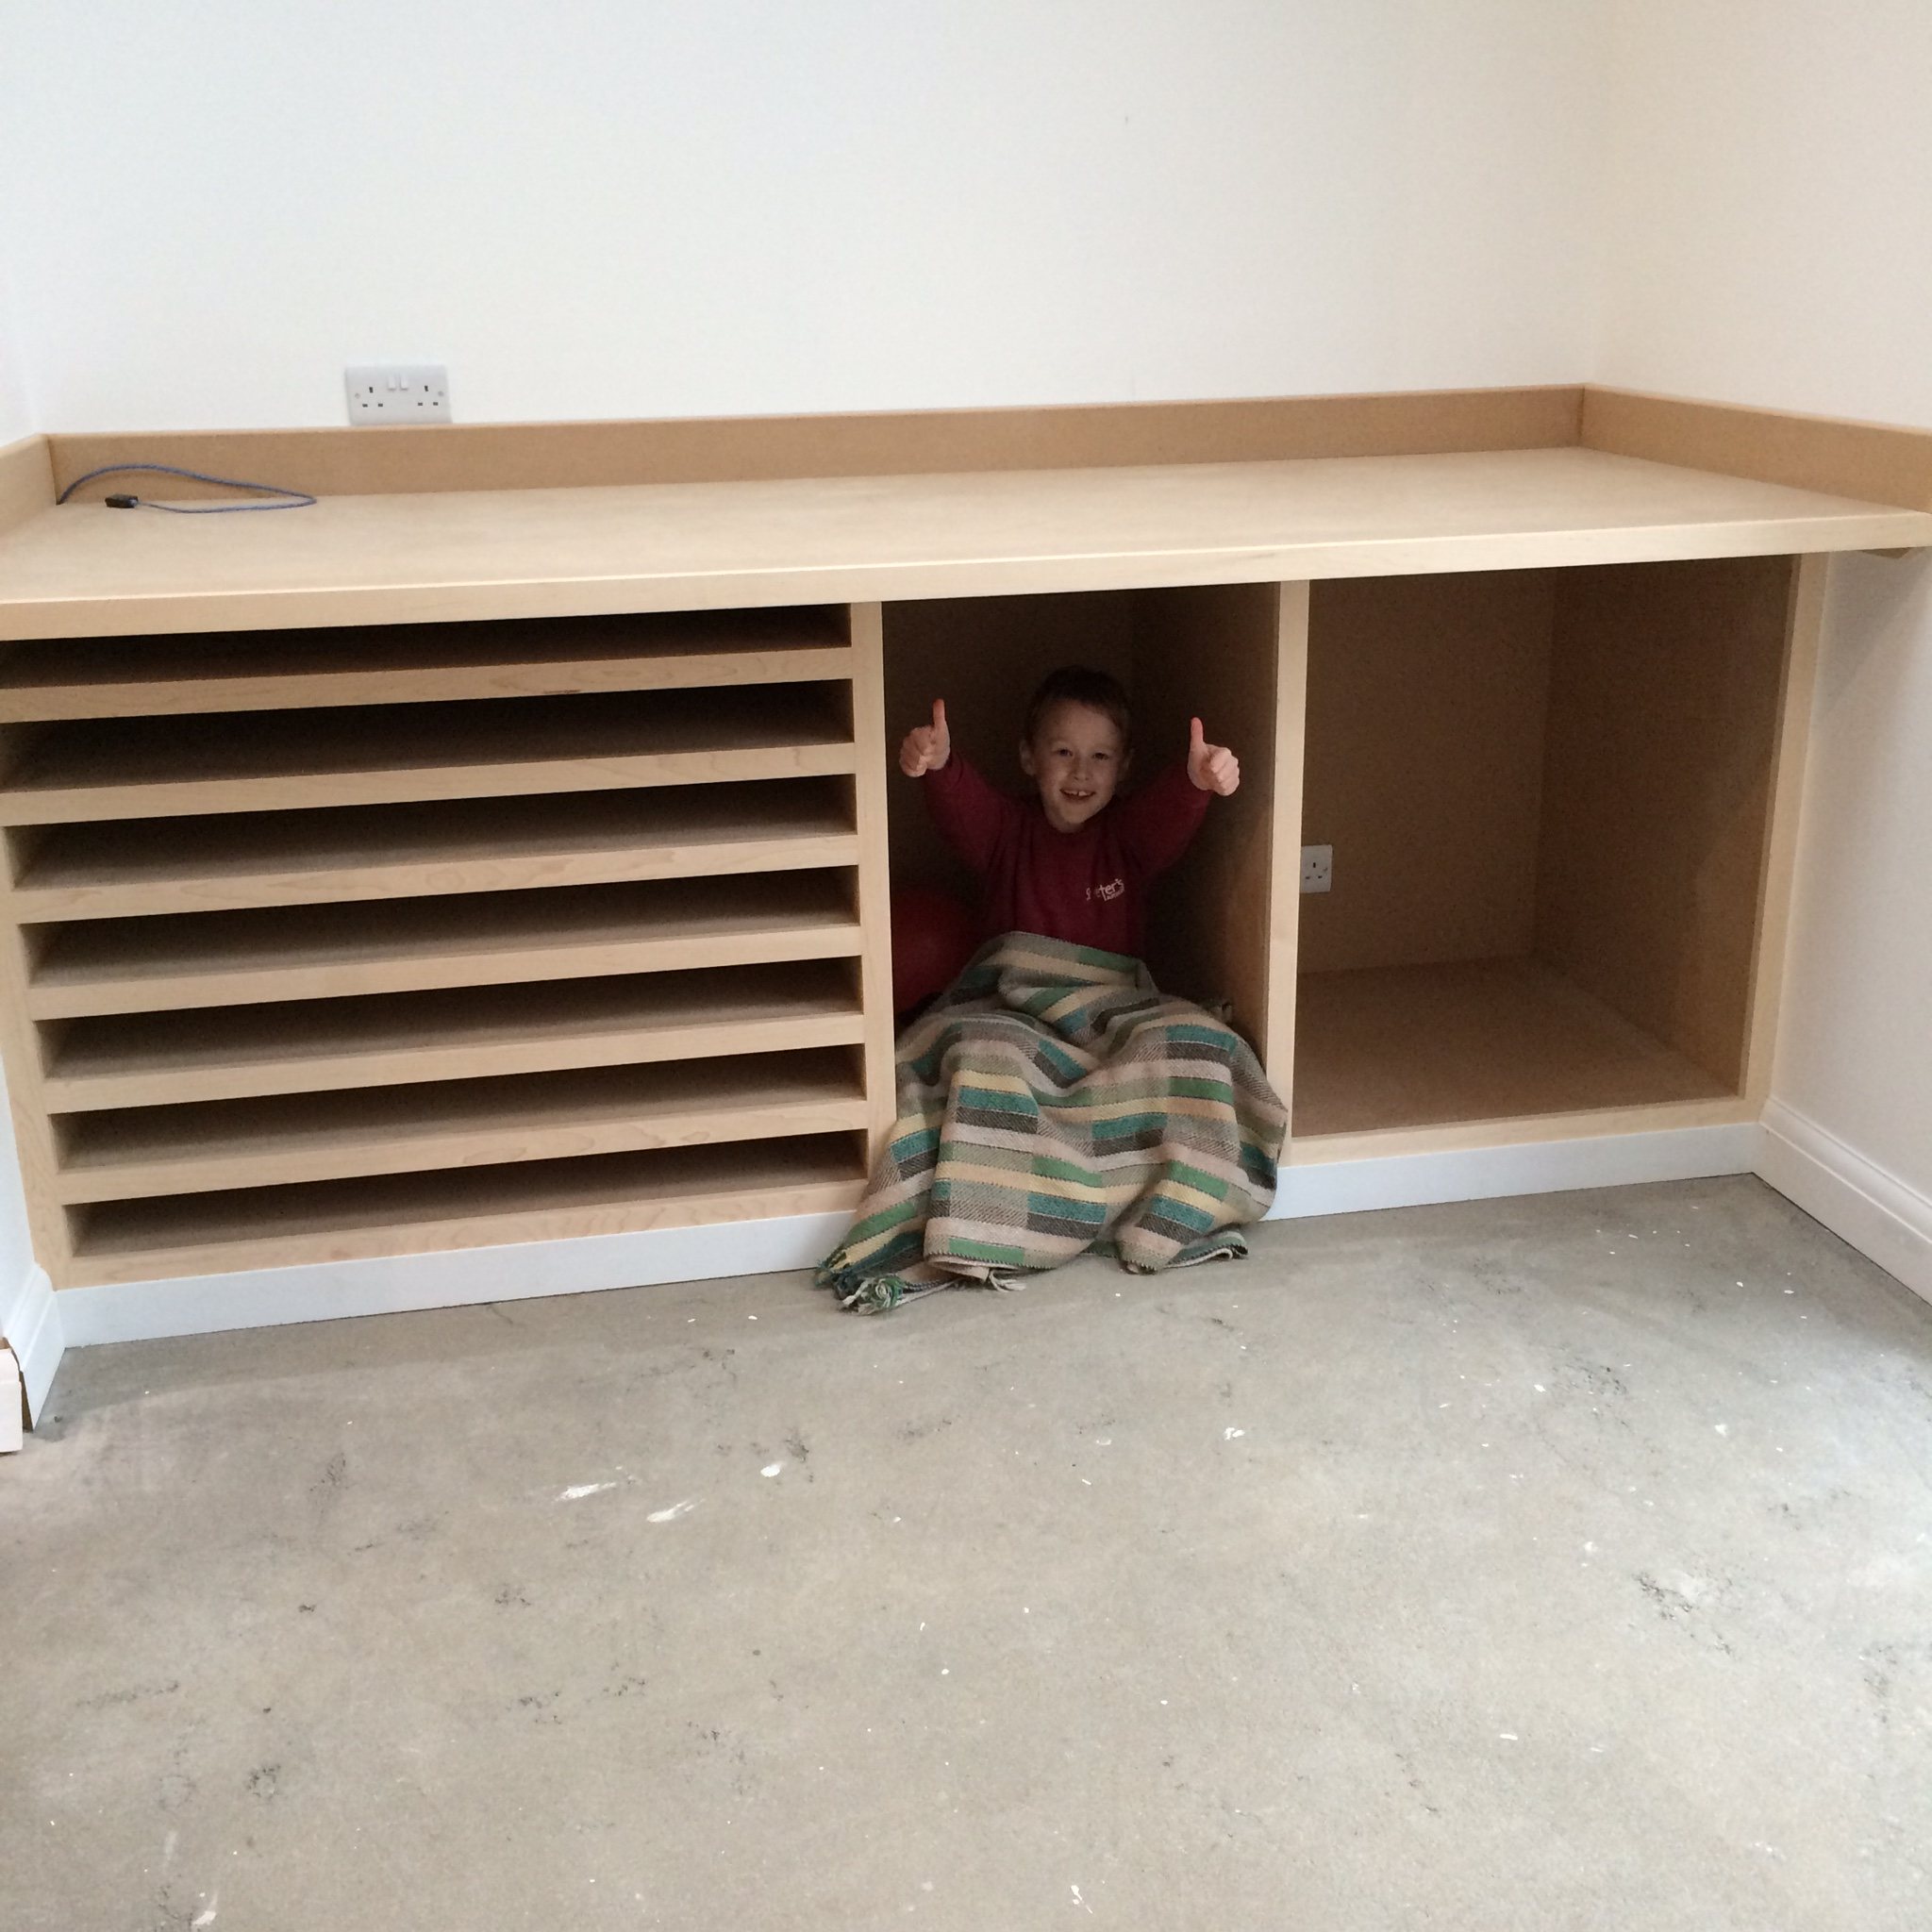 Did I mention I LOVE my work bench? Thank you so much Matt & Fred,  you did a great job and the quality of the workmanship is beautiful. As a fellow crafts person I really appreciate the work that went in to it, and it really is my favourite thing in the house.